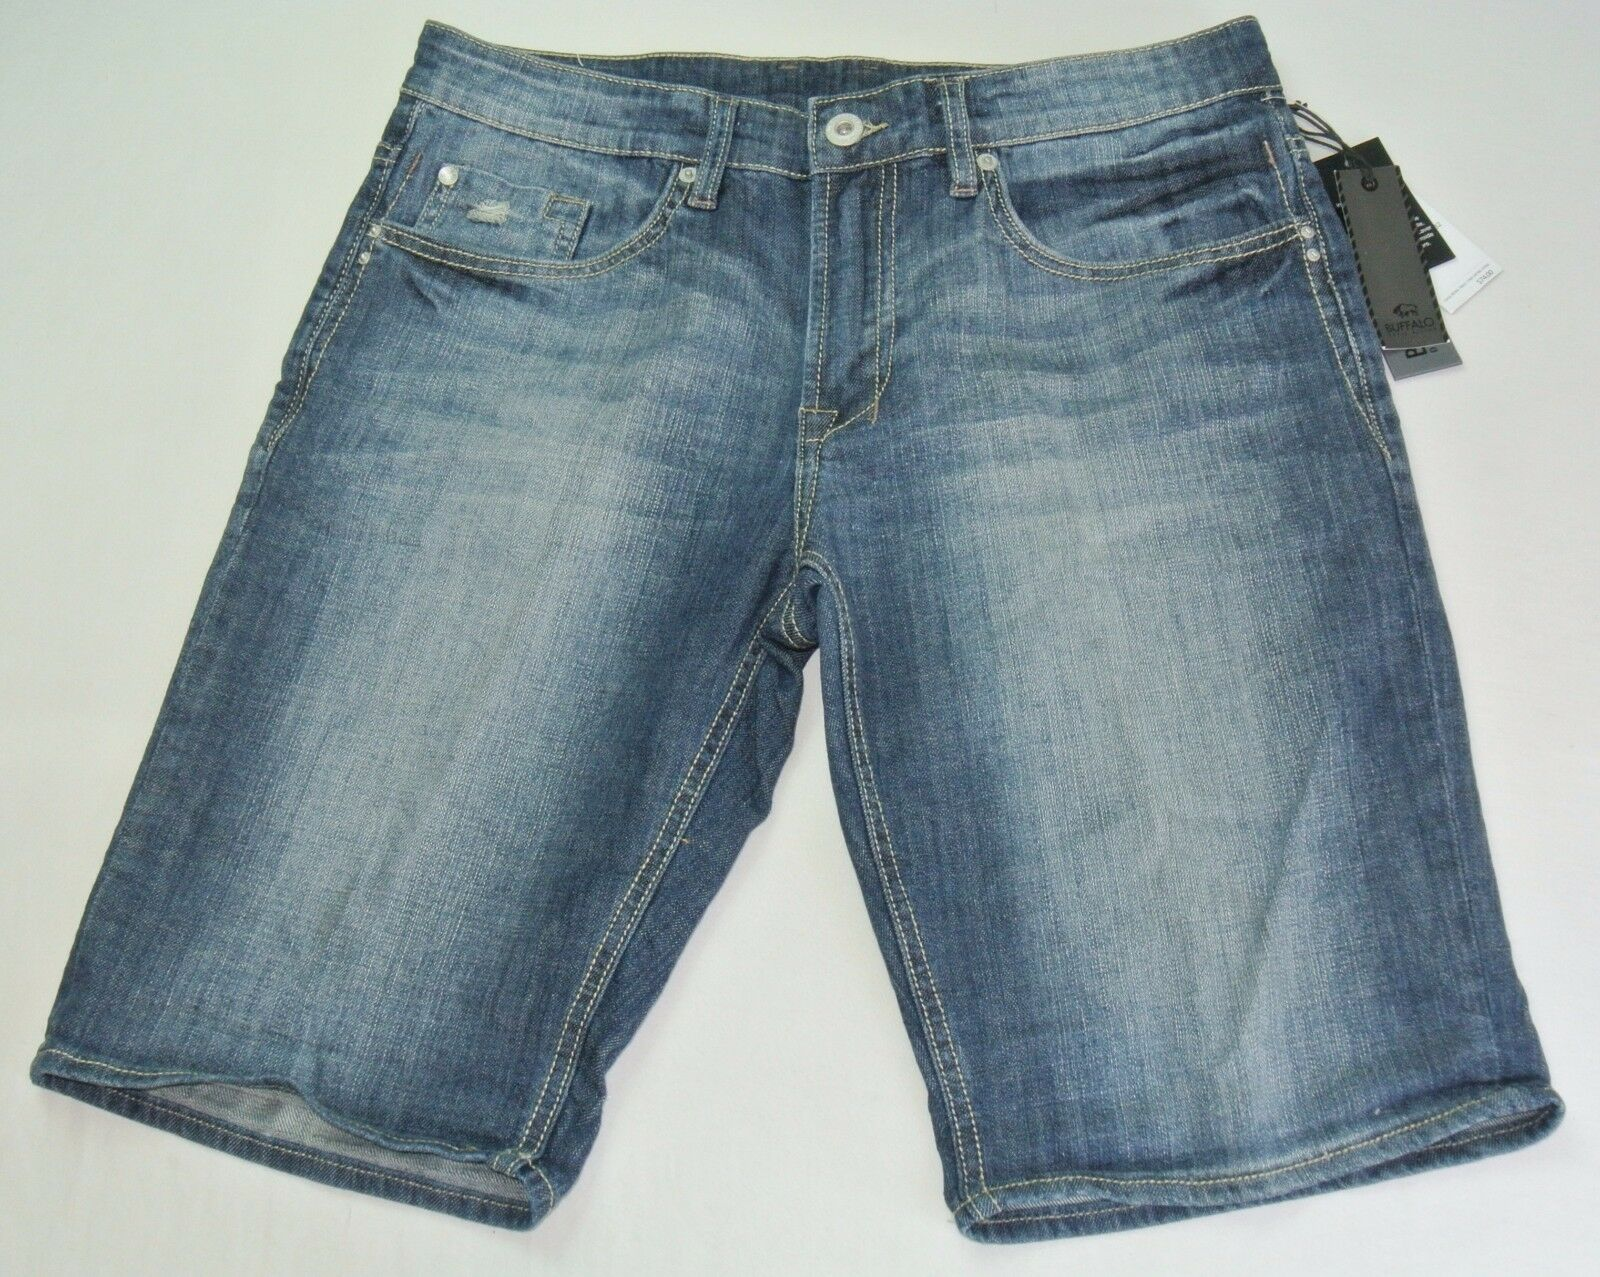 Buffalo Men's Shorts Short Jeans Pants 32 bluee Six-x Basic Stretch Bleached New